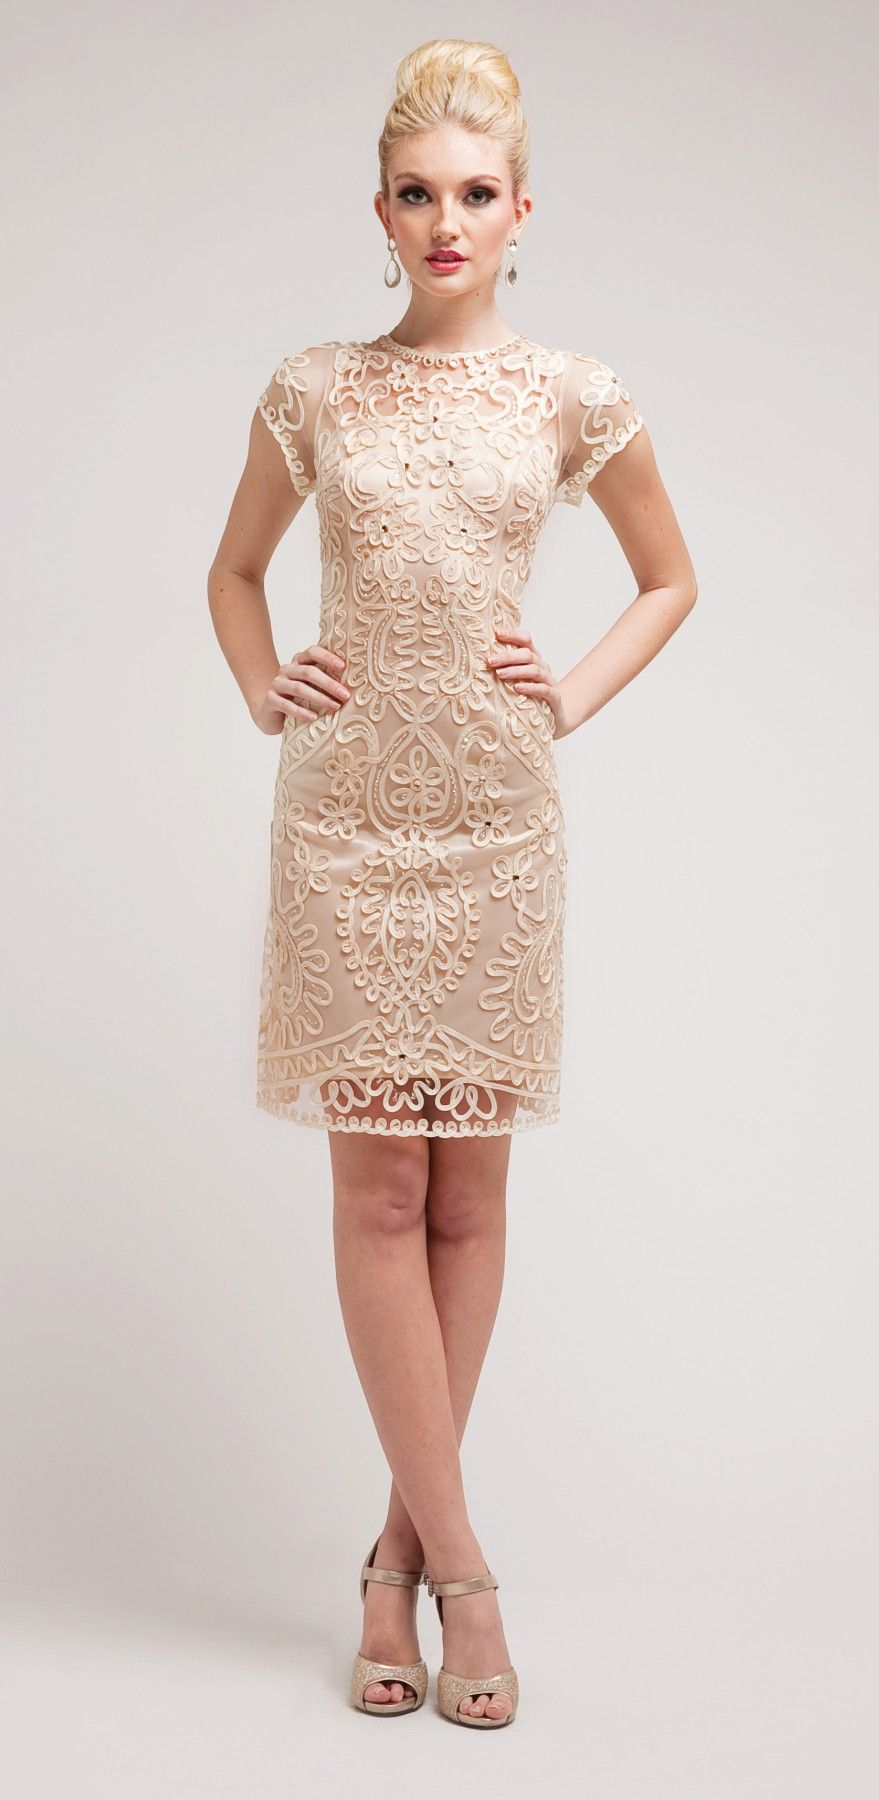 Knee Length Lace Cream Dress Semi Formal Short Sleeve $147.99 ...